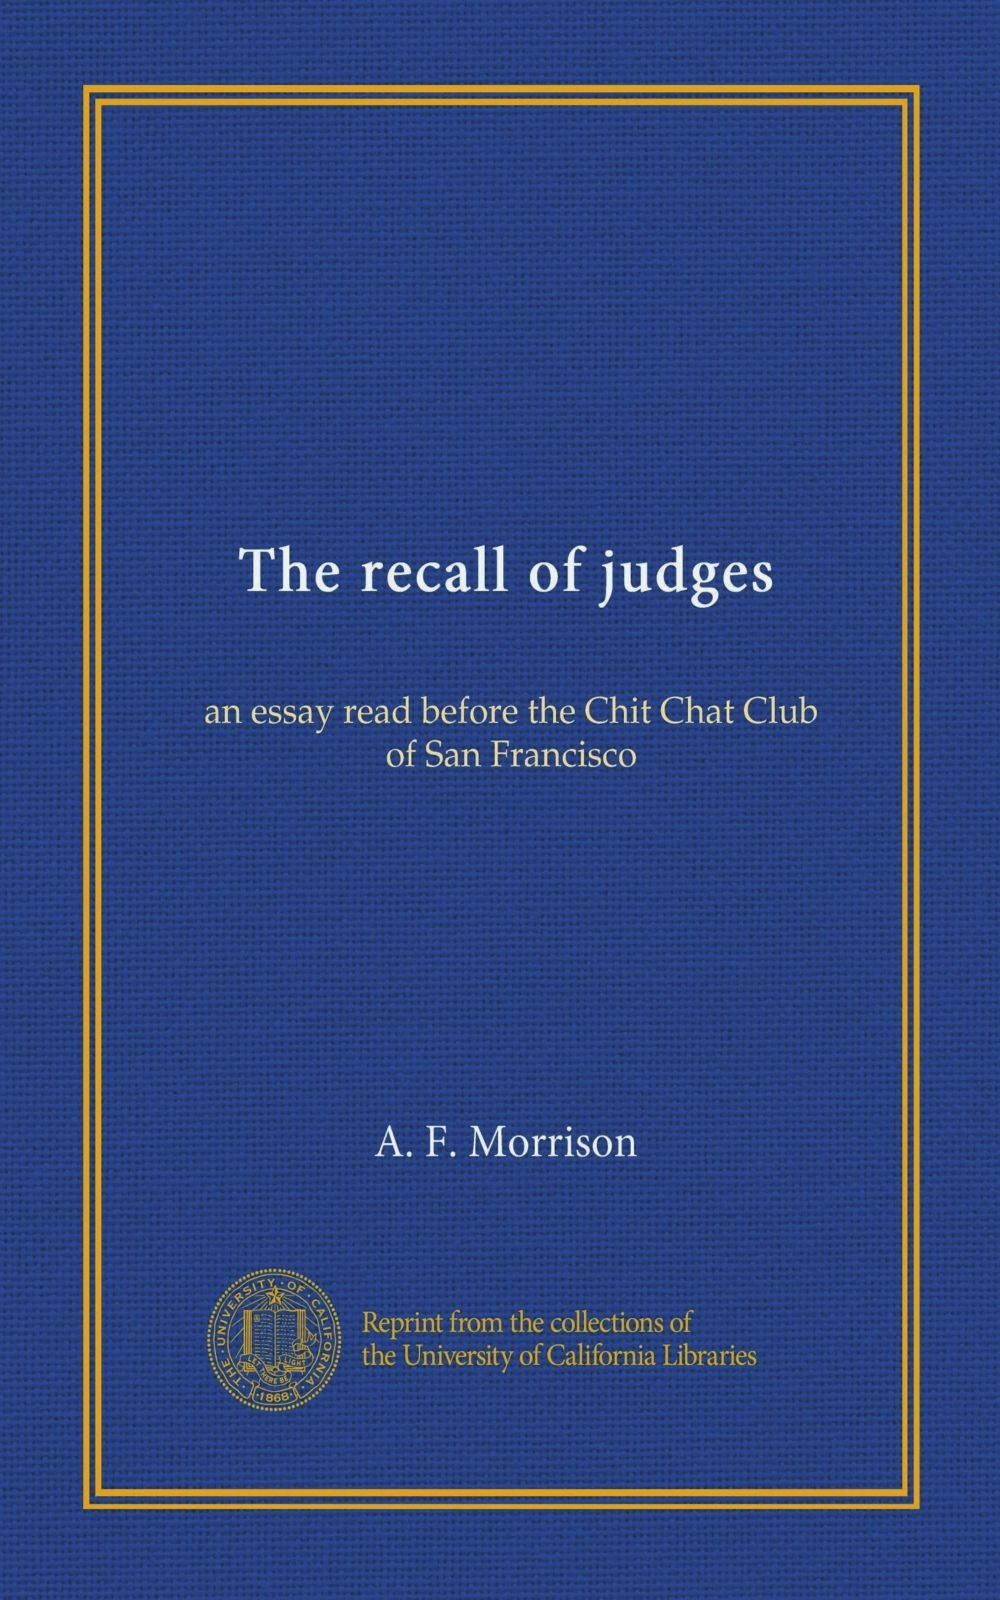 Global Warming Essay Thesis The Recall Of Judges An Essay Read Before The Chit Chat Club Of San  Francisco A F Morrison Amazoncom Books Essay With Thesis Statement also How To Use A Thesis Statement In An Essay The Recall Of Judges An Essay Read Before The Chit Chat Club Of San  Compare And Contrast Essay High School And College